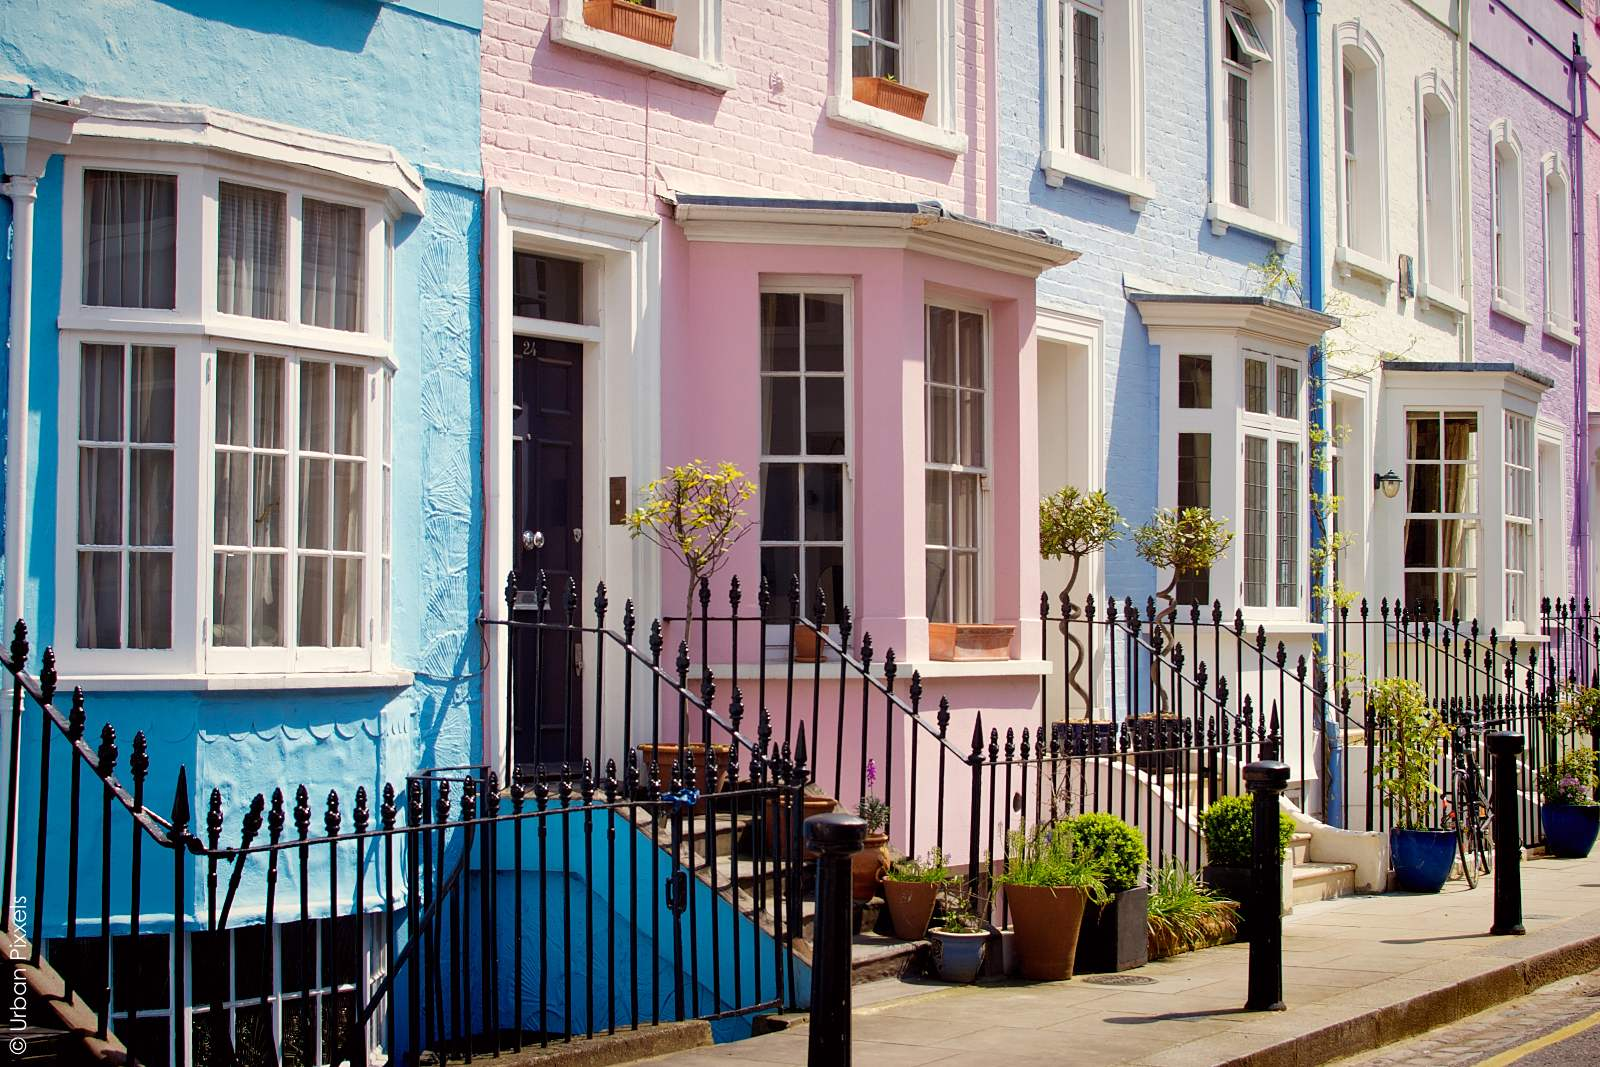 The Cost of City Living: Why Buying a Home Outside the City Could Work Out Cheaper